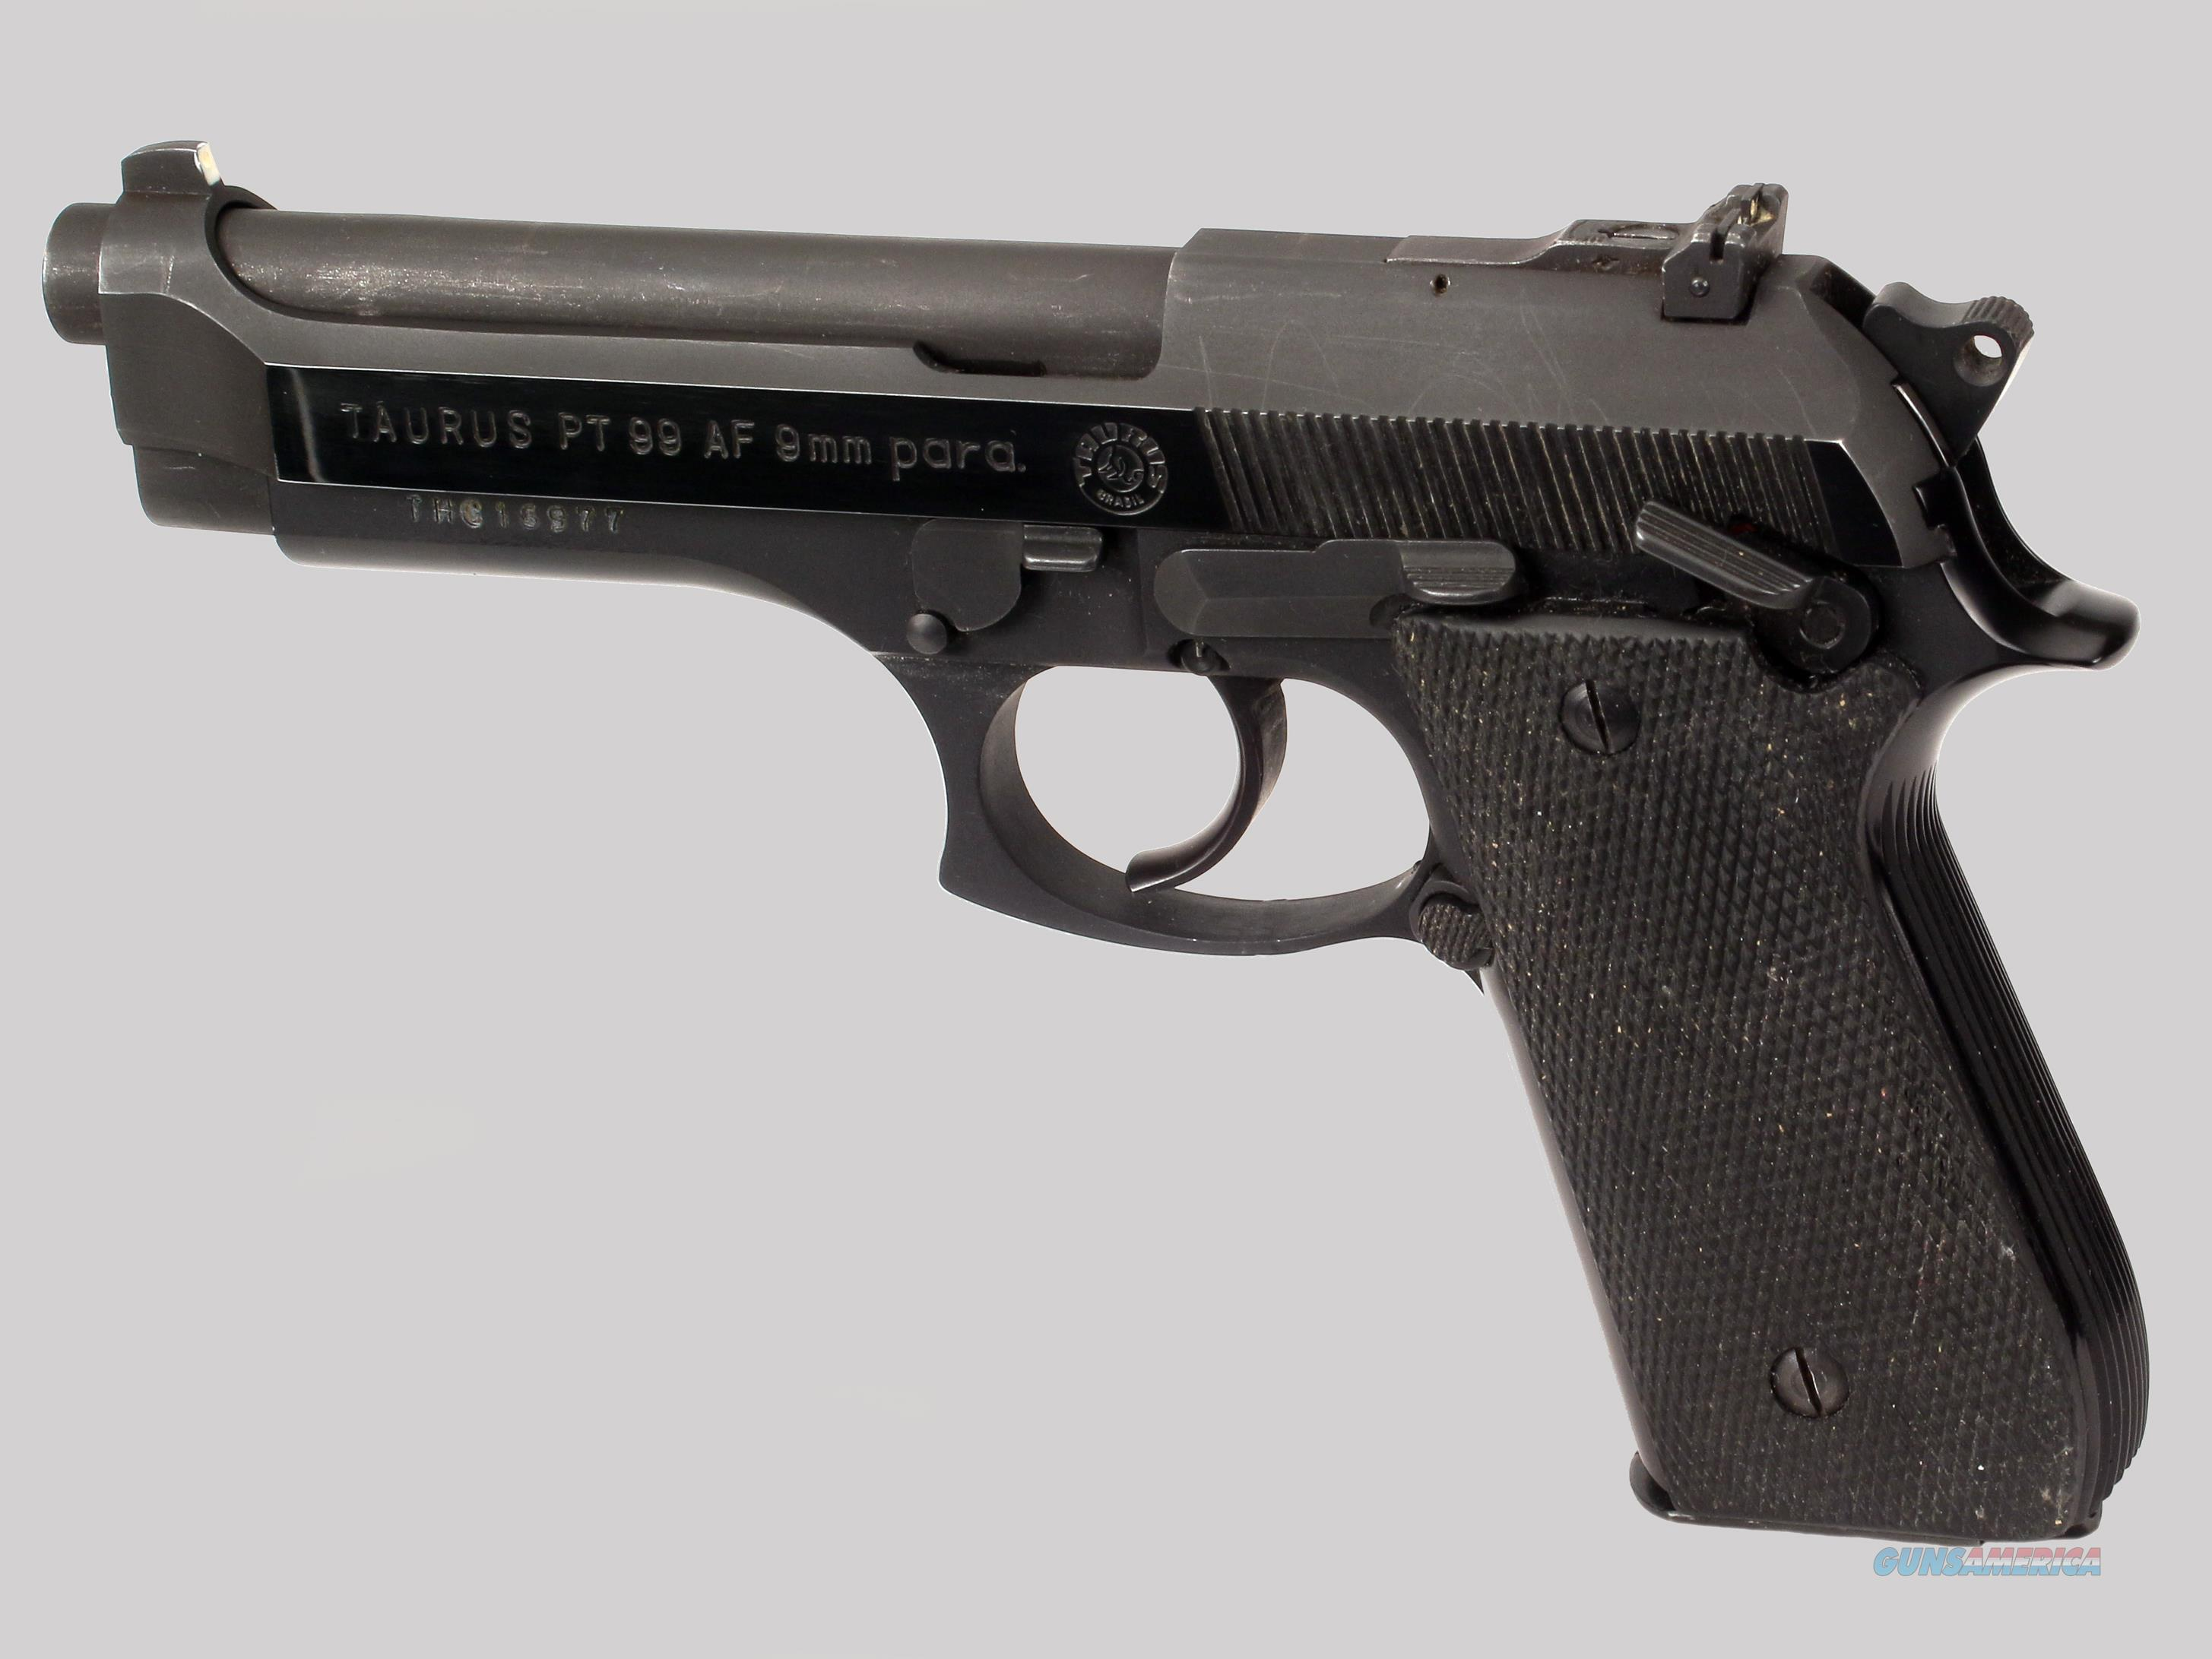 taurus 9mm pistol model pt99f for sale